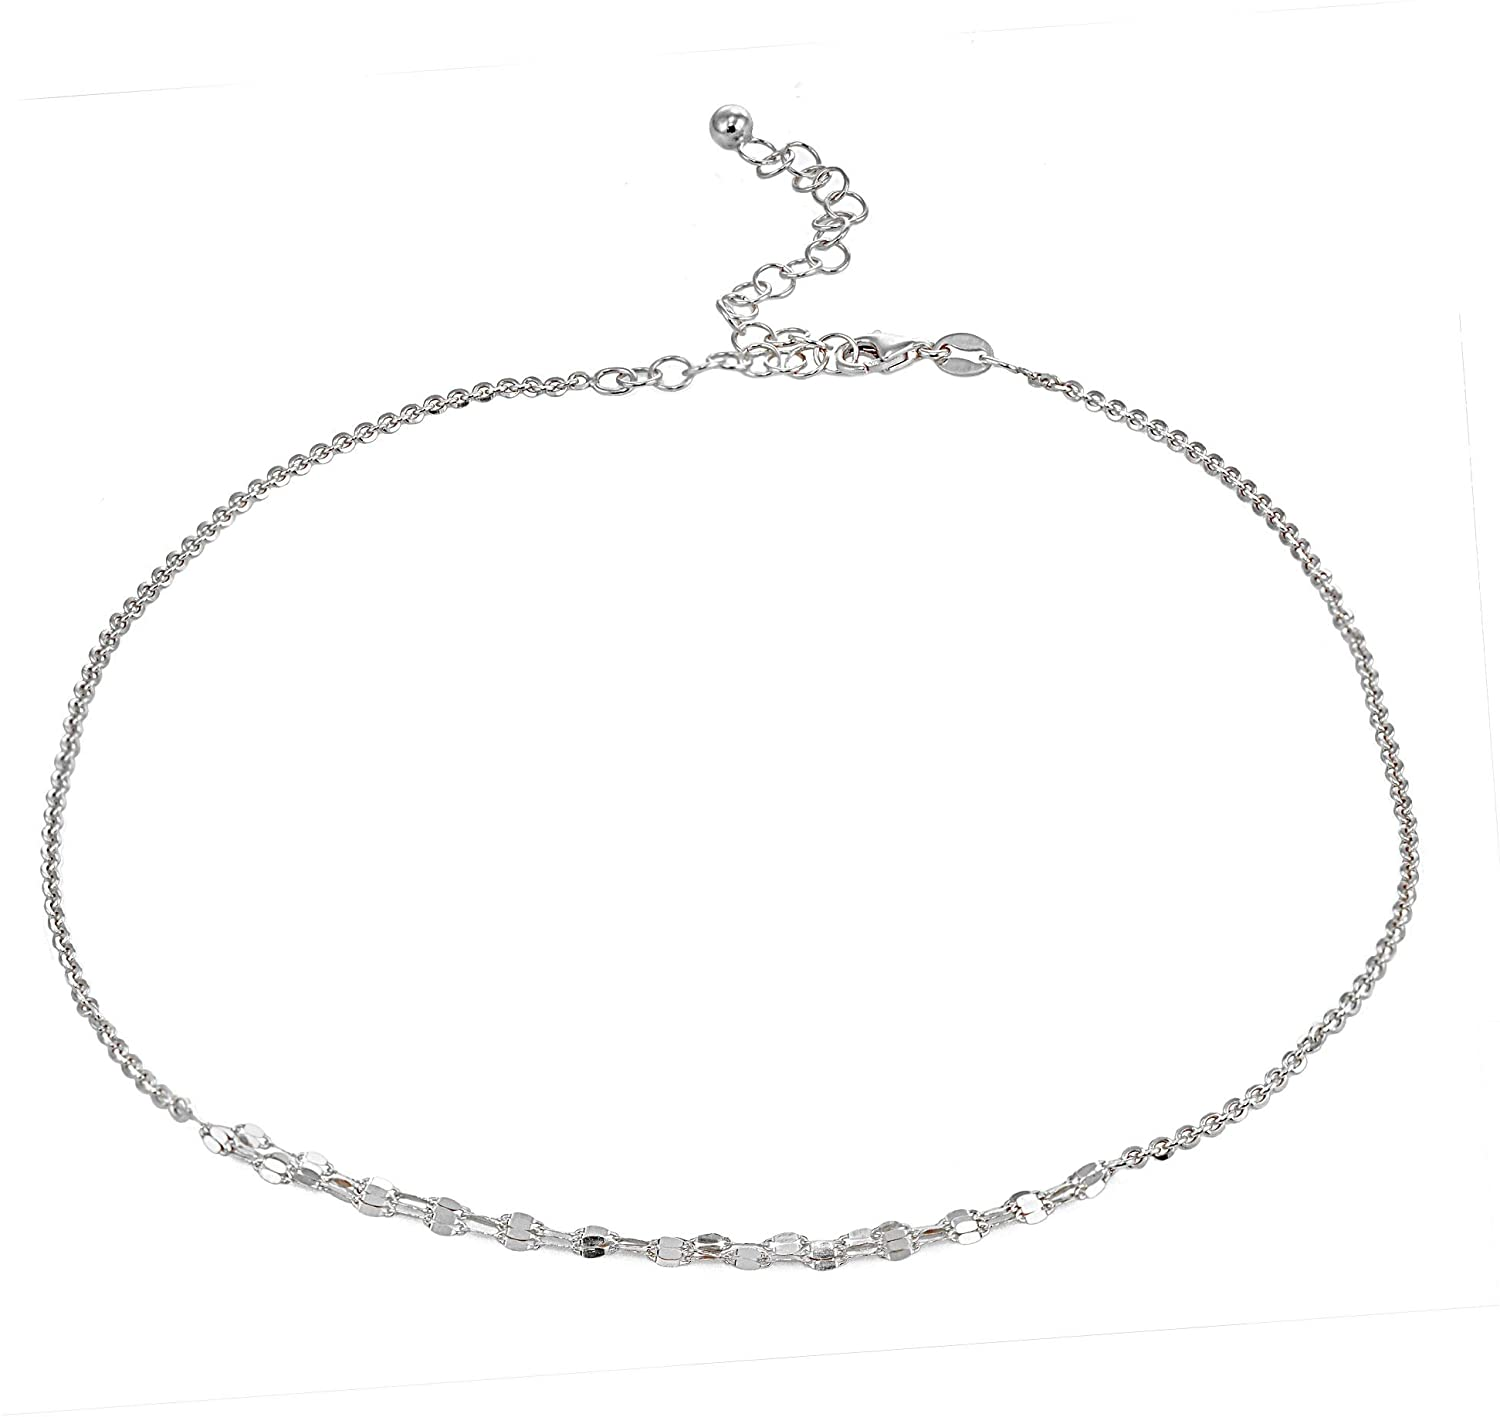 GemStar USA Sterling Silver Cable with Fashion Link Italian Chain Triple Layered Choker Necklace